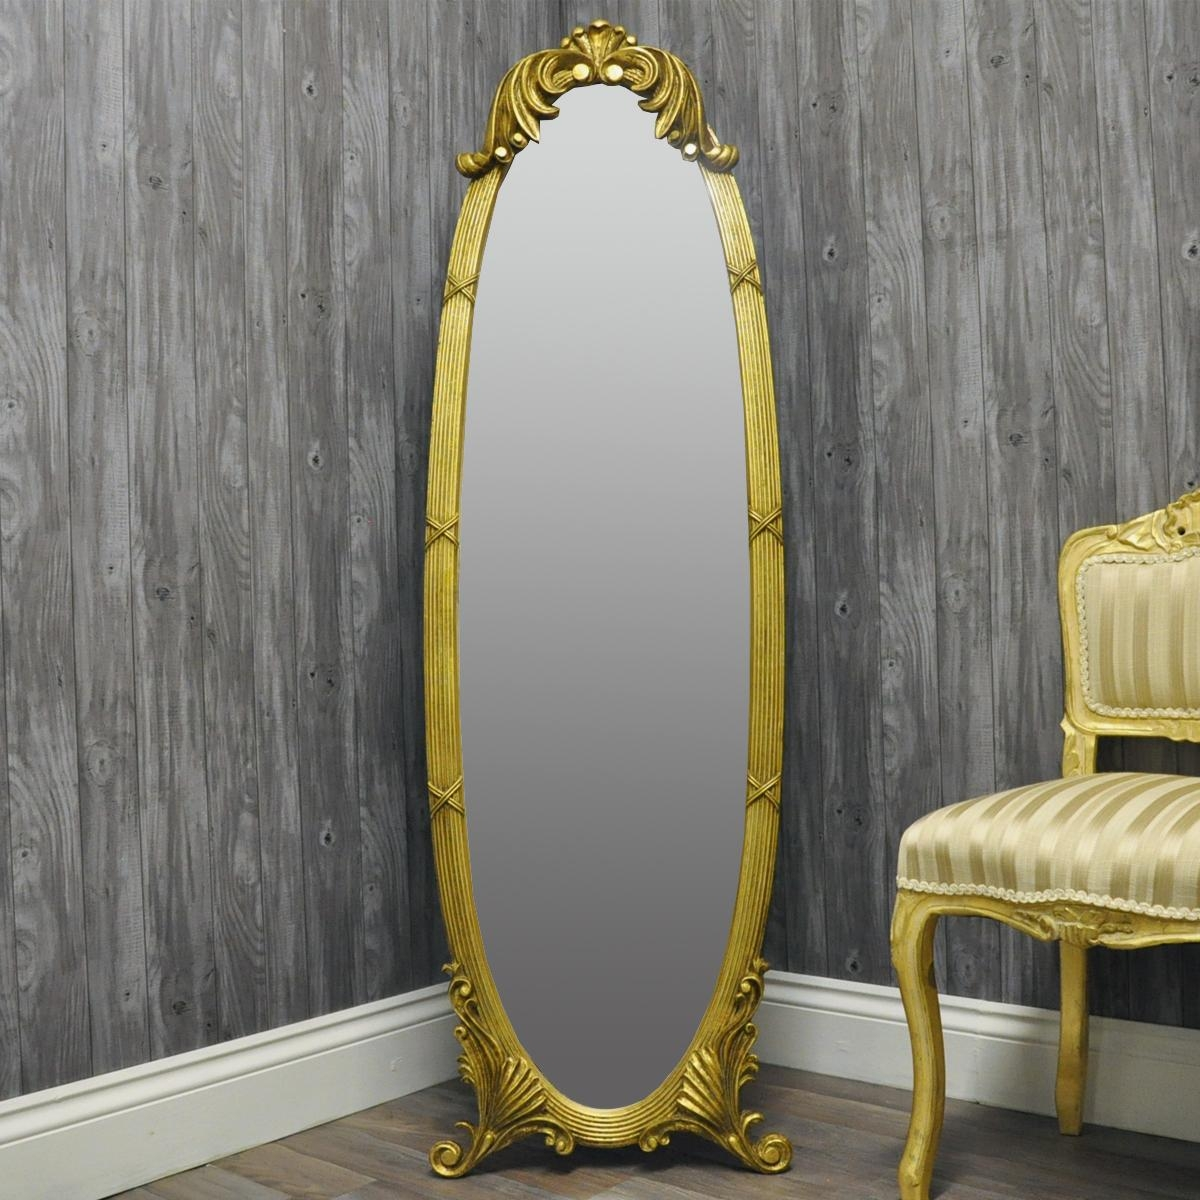 Choose From A Range Of Full Length Cheval Mirrors Regarding French Style Full Length Mirror (Image 9 of 20)